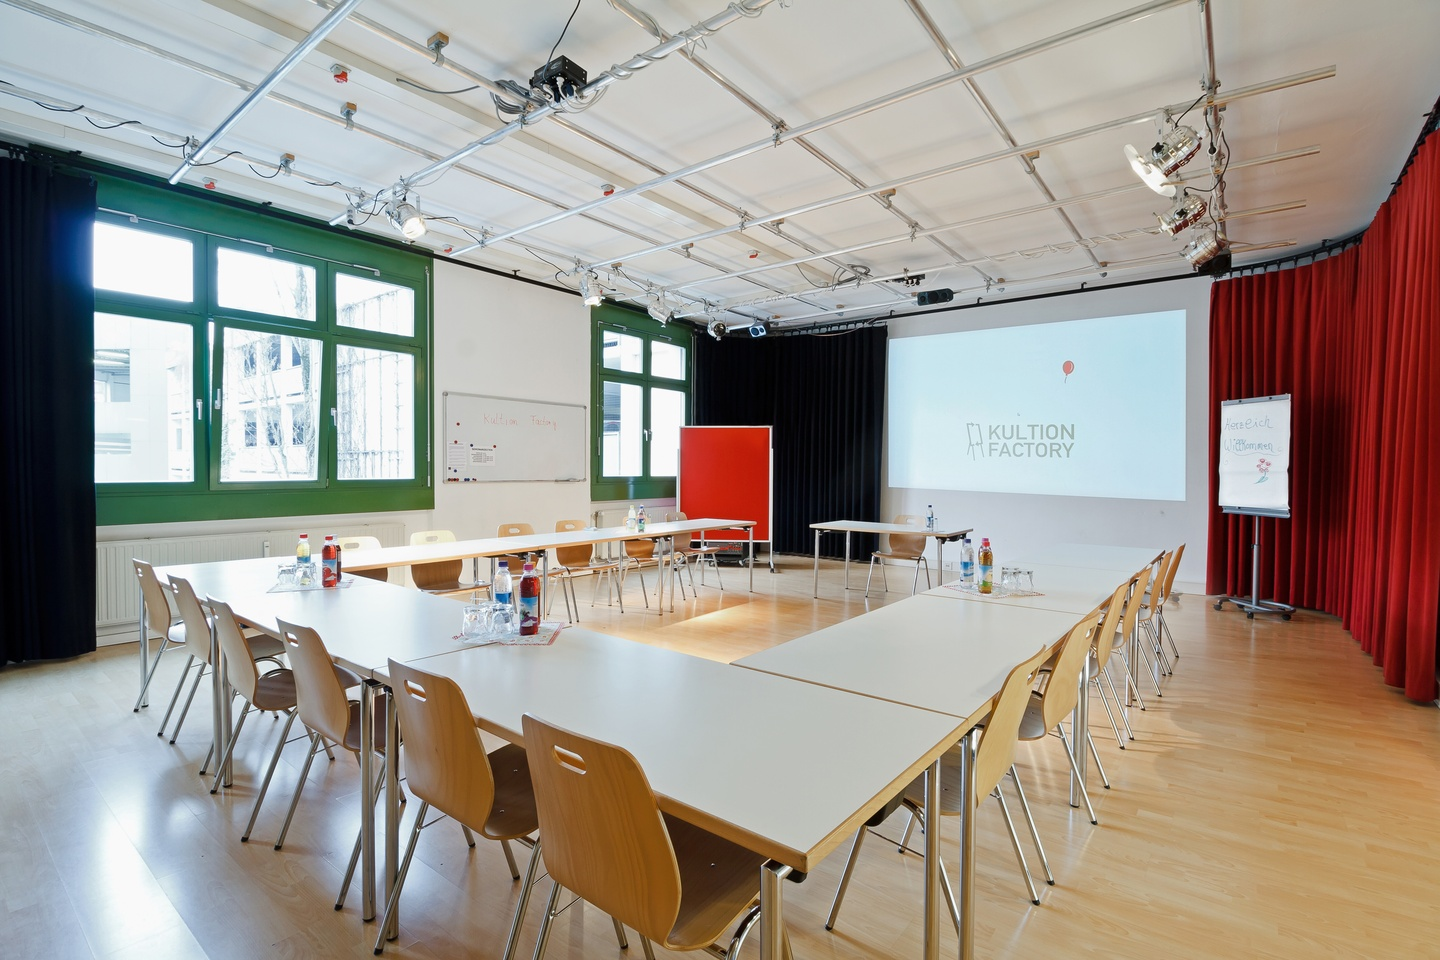 Munich seminar rooms Lieu industriel Kultion Factory - Studio image 1